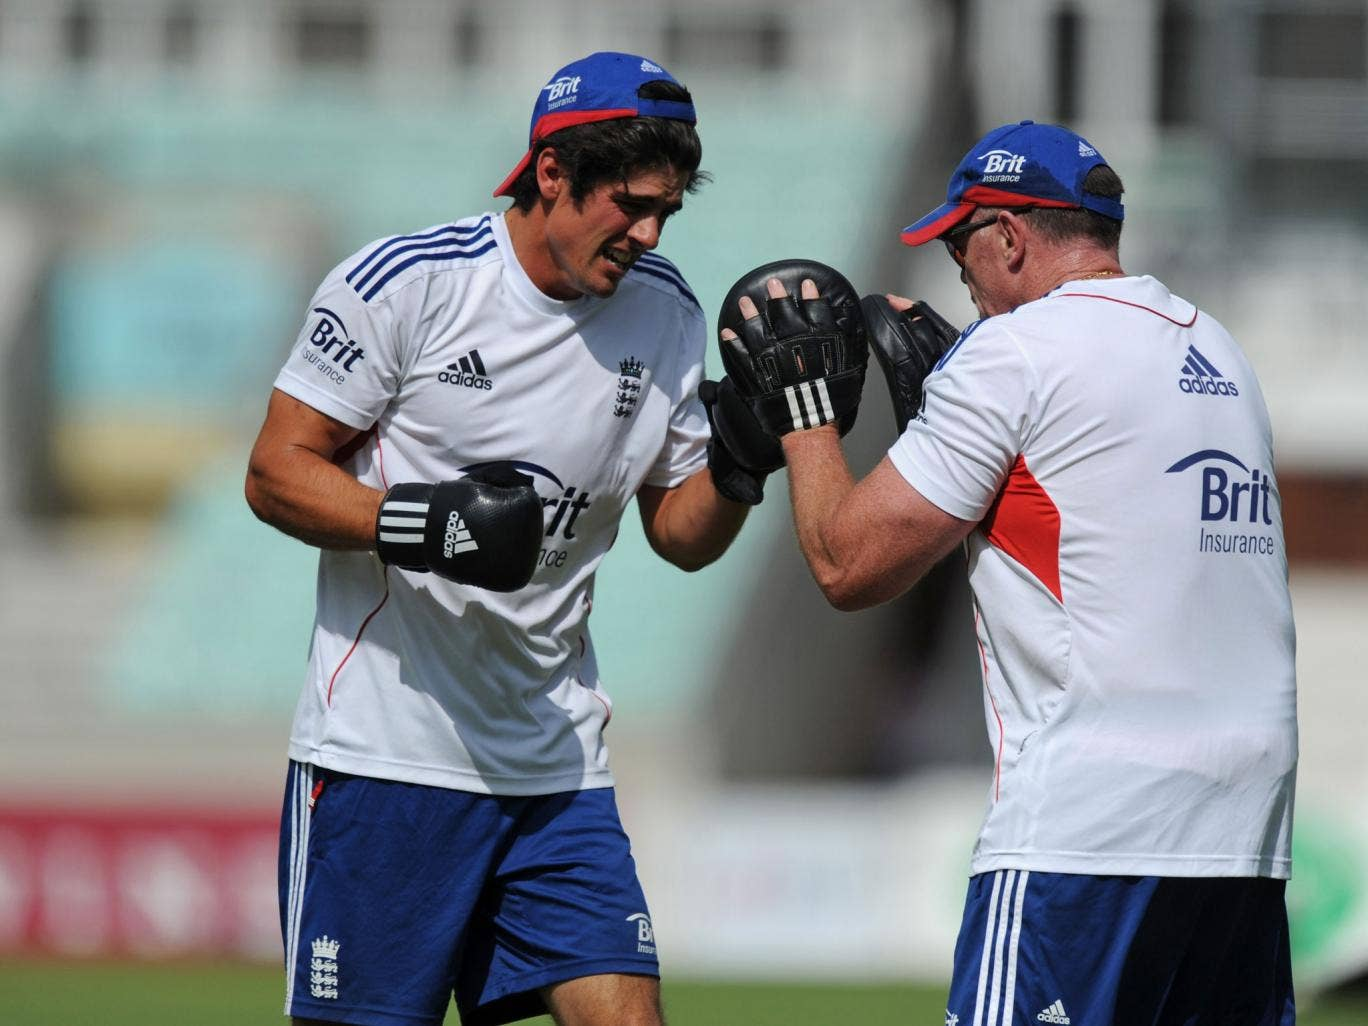 England's captain, Alastair Cook, gets his boxing gloves on at The Oval yesterday ahead of tomorrow's fifth and final Test